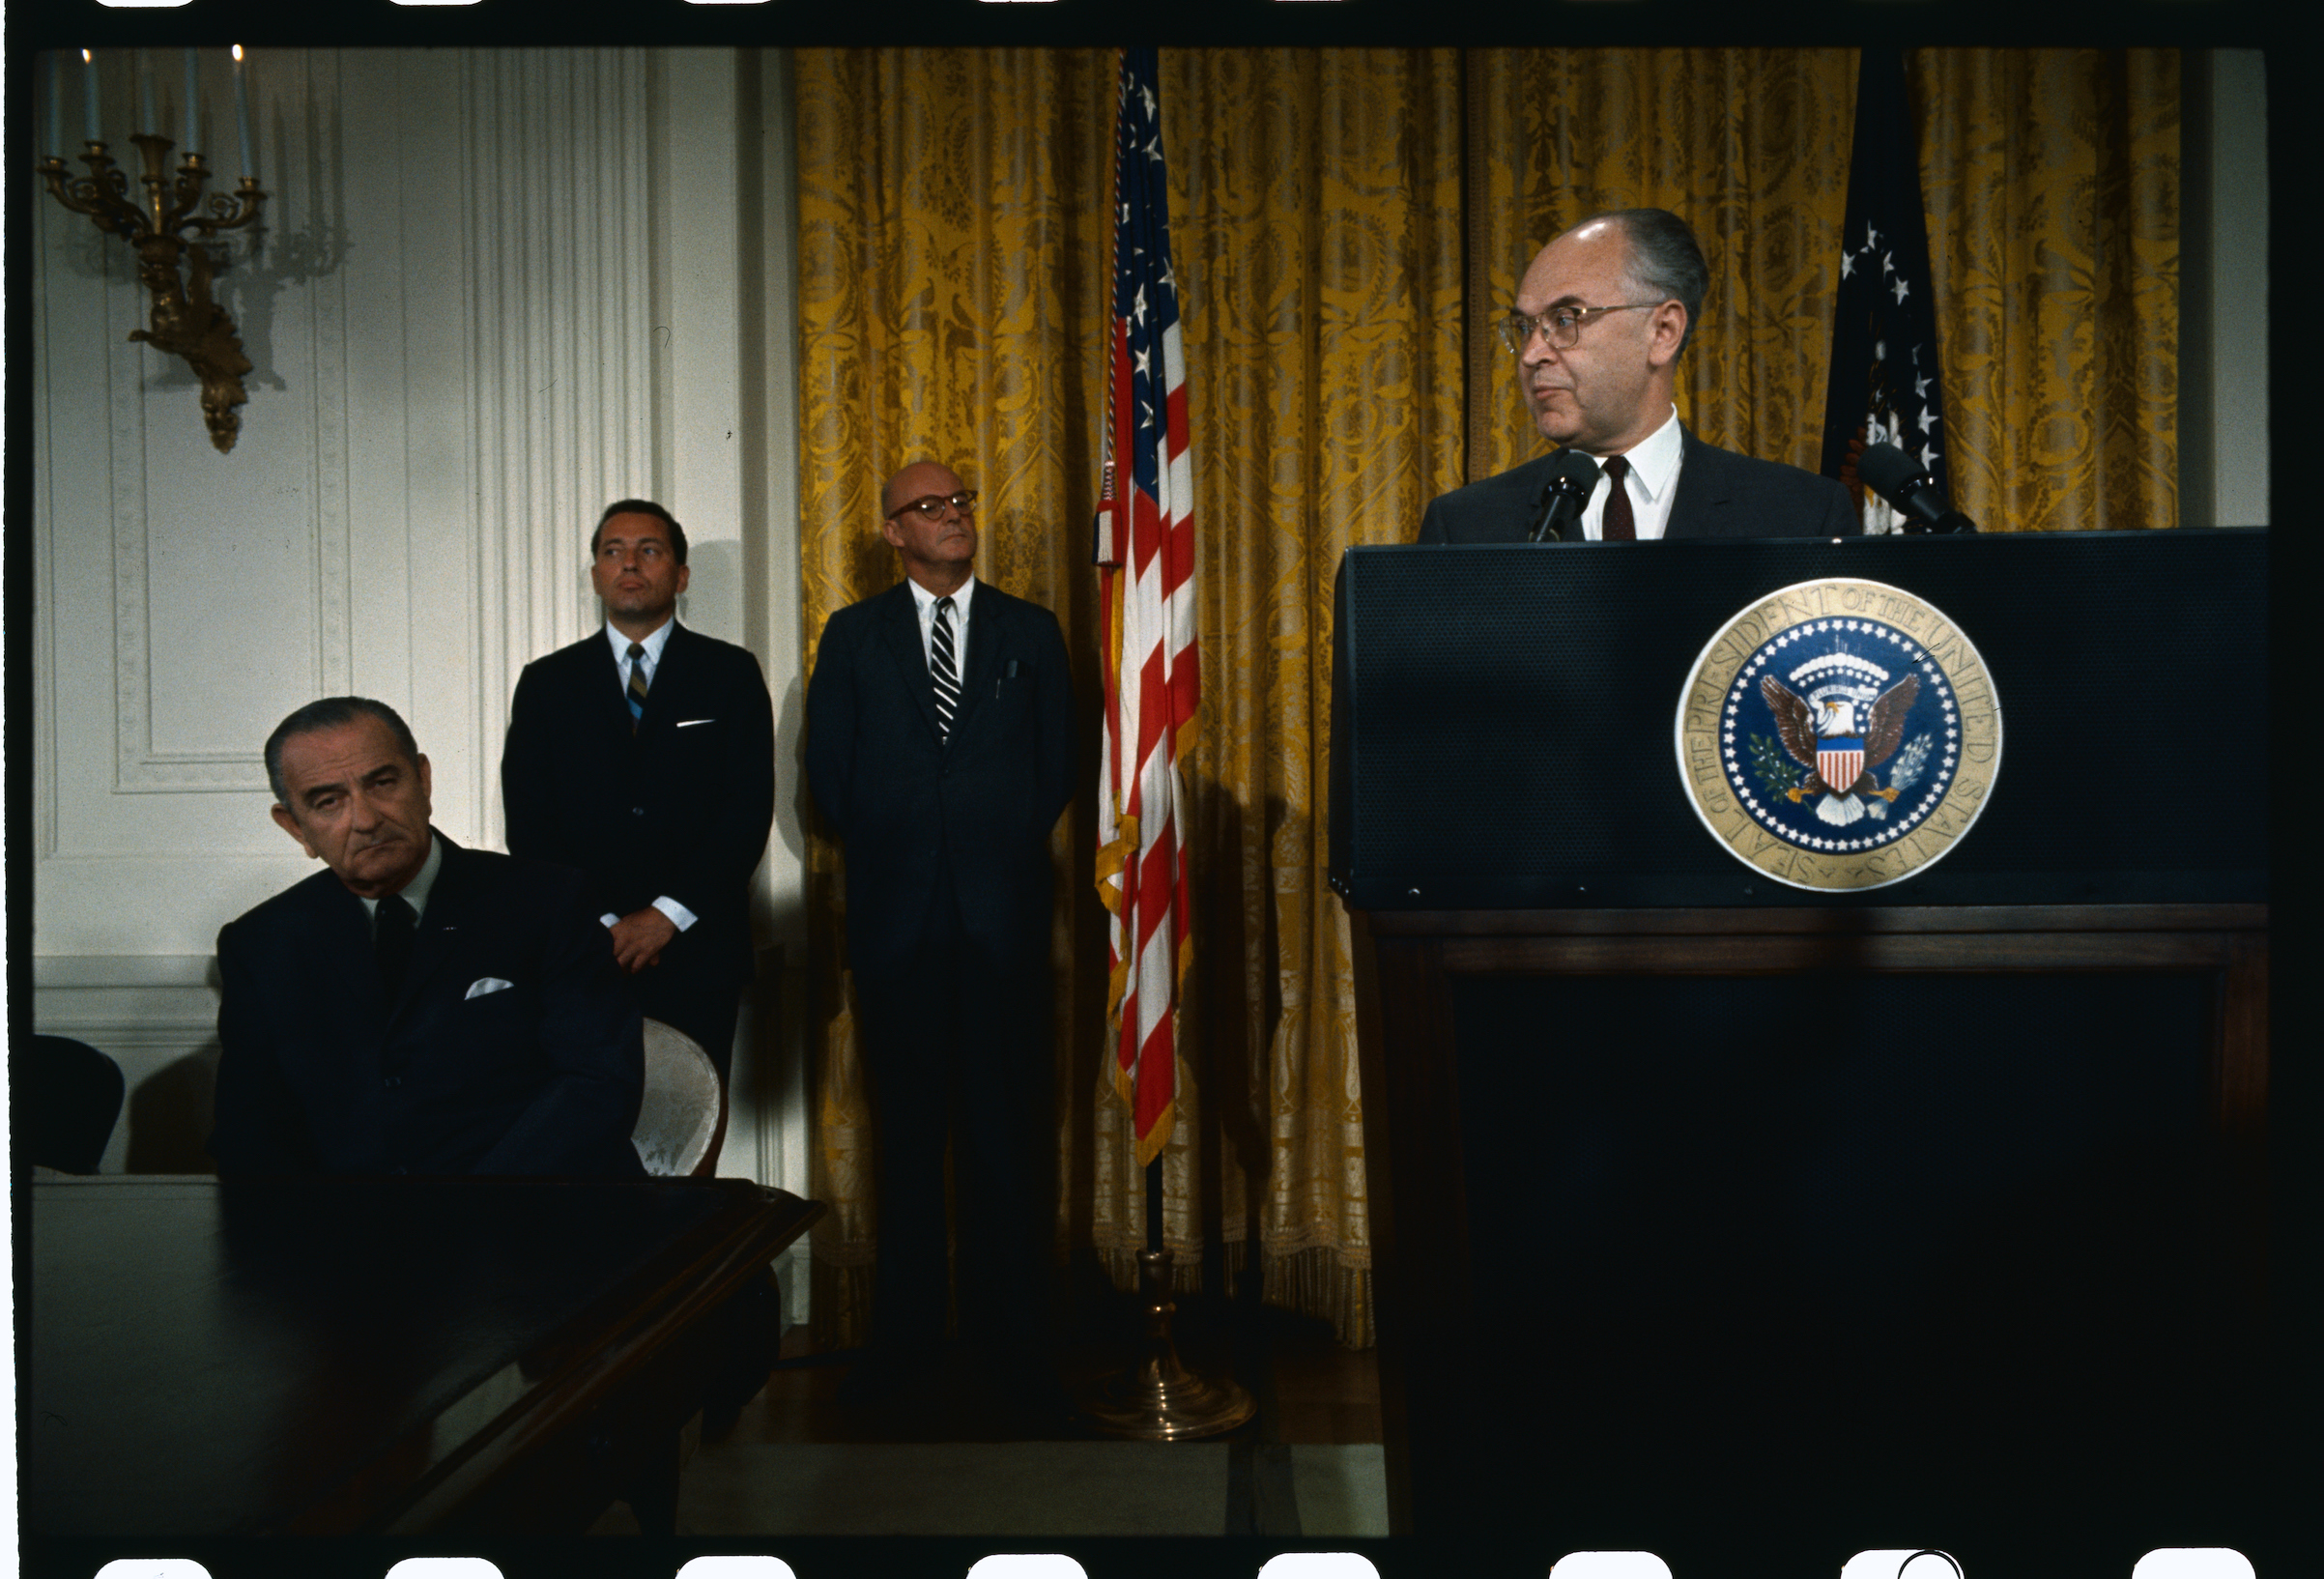 Soviet Ambassador Anatoly Dobrynin, speaking during the signing of the nuclear nonproliferation treaty in the White House, in 1968.